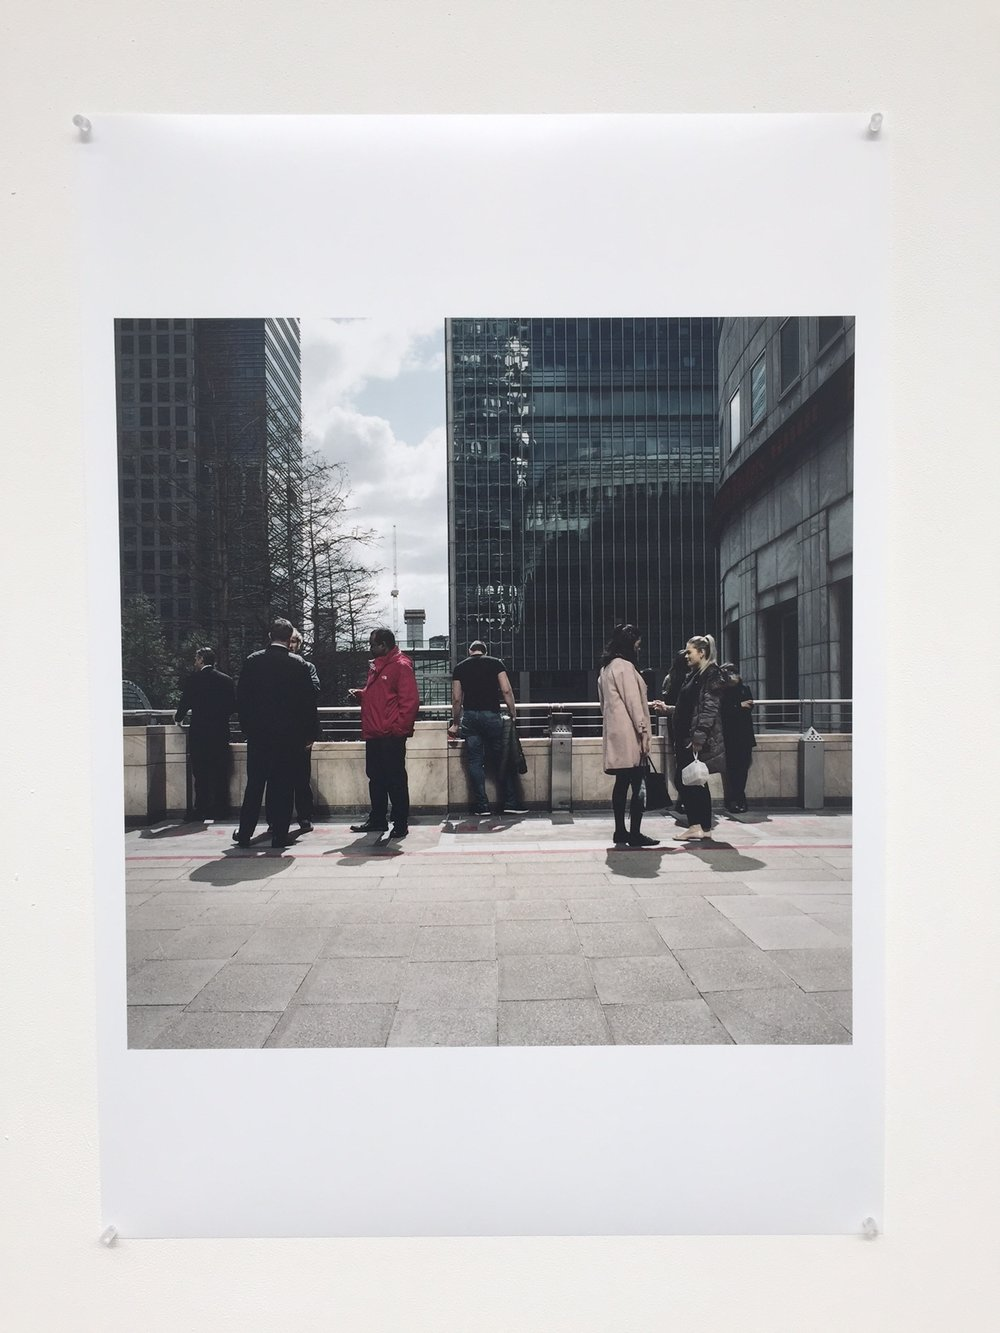 Original A1 print exhibited at The Old Truman Brewery.£499 - Item Code: EP6